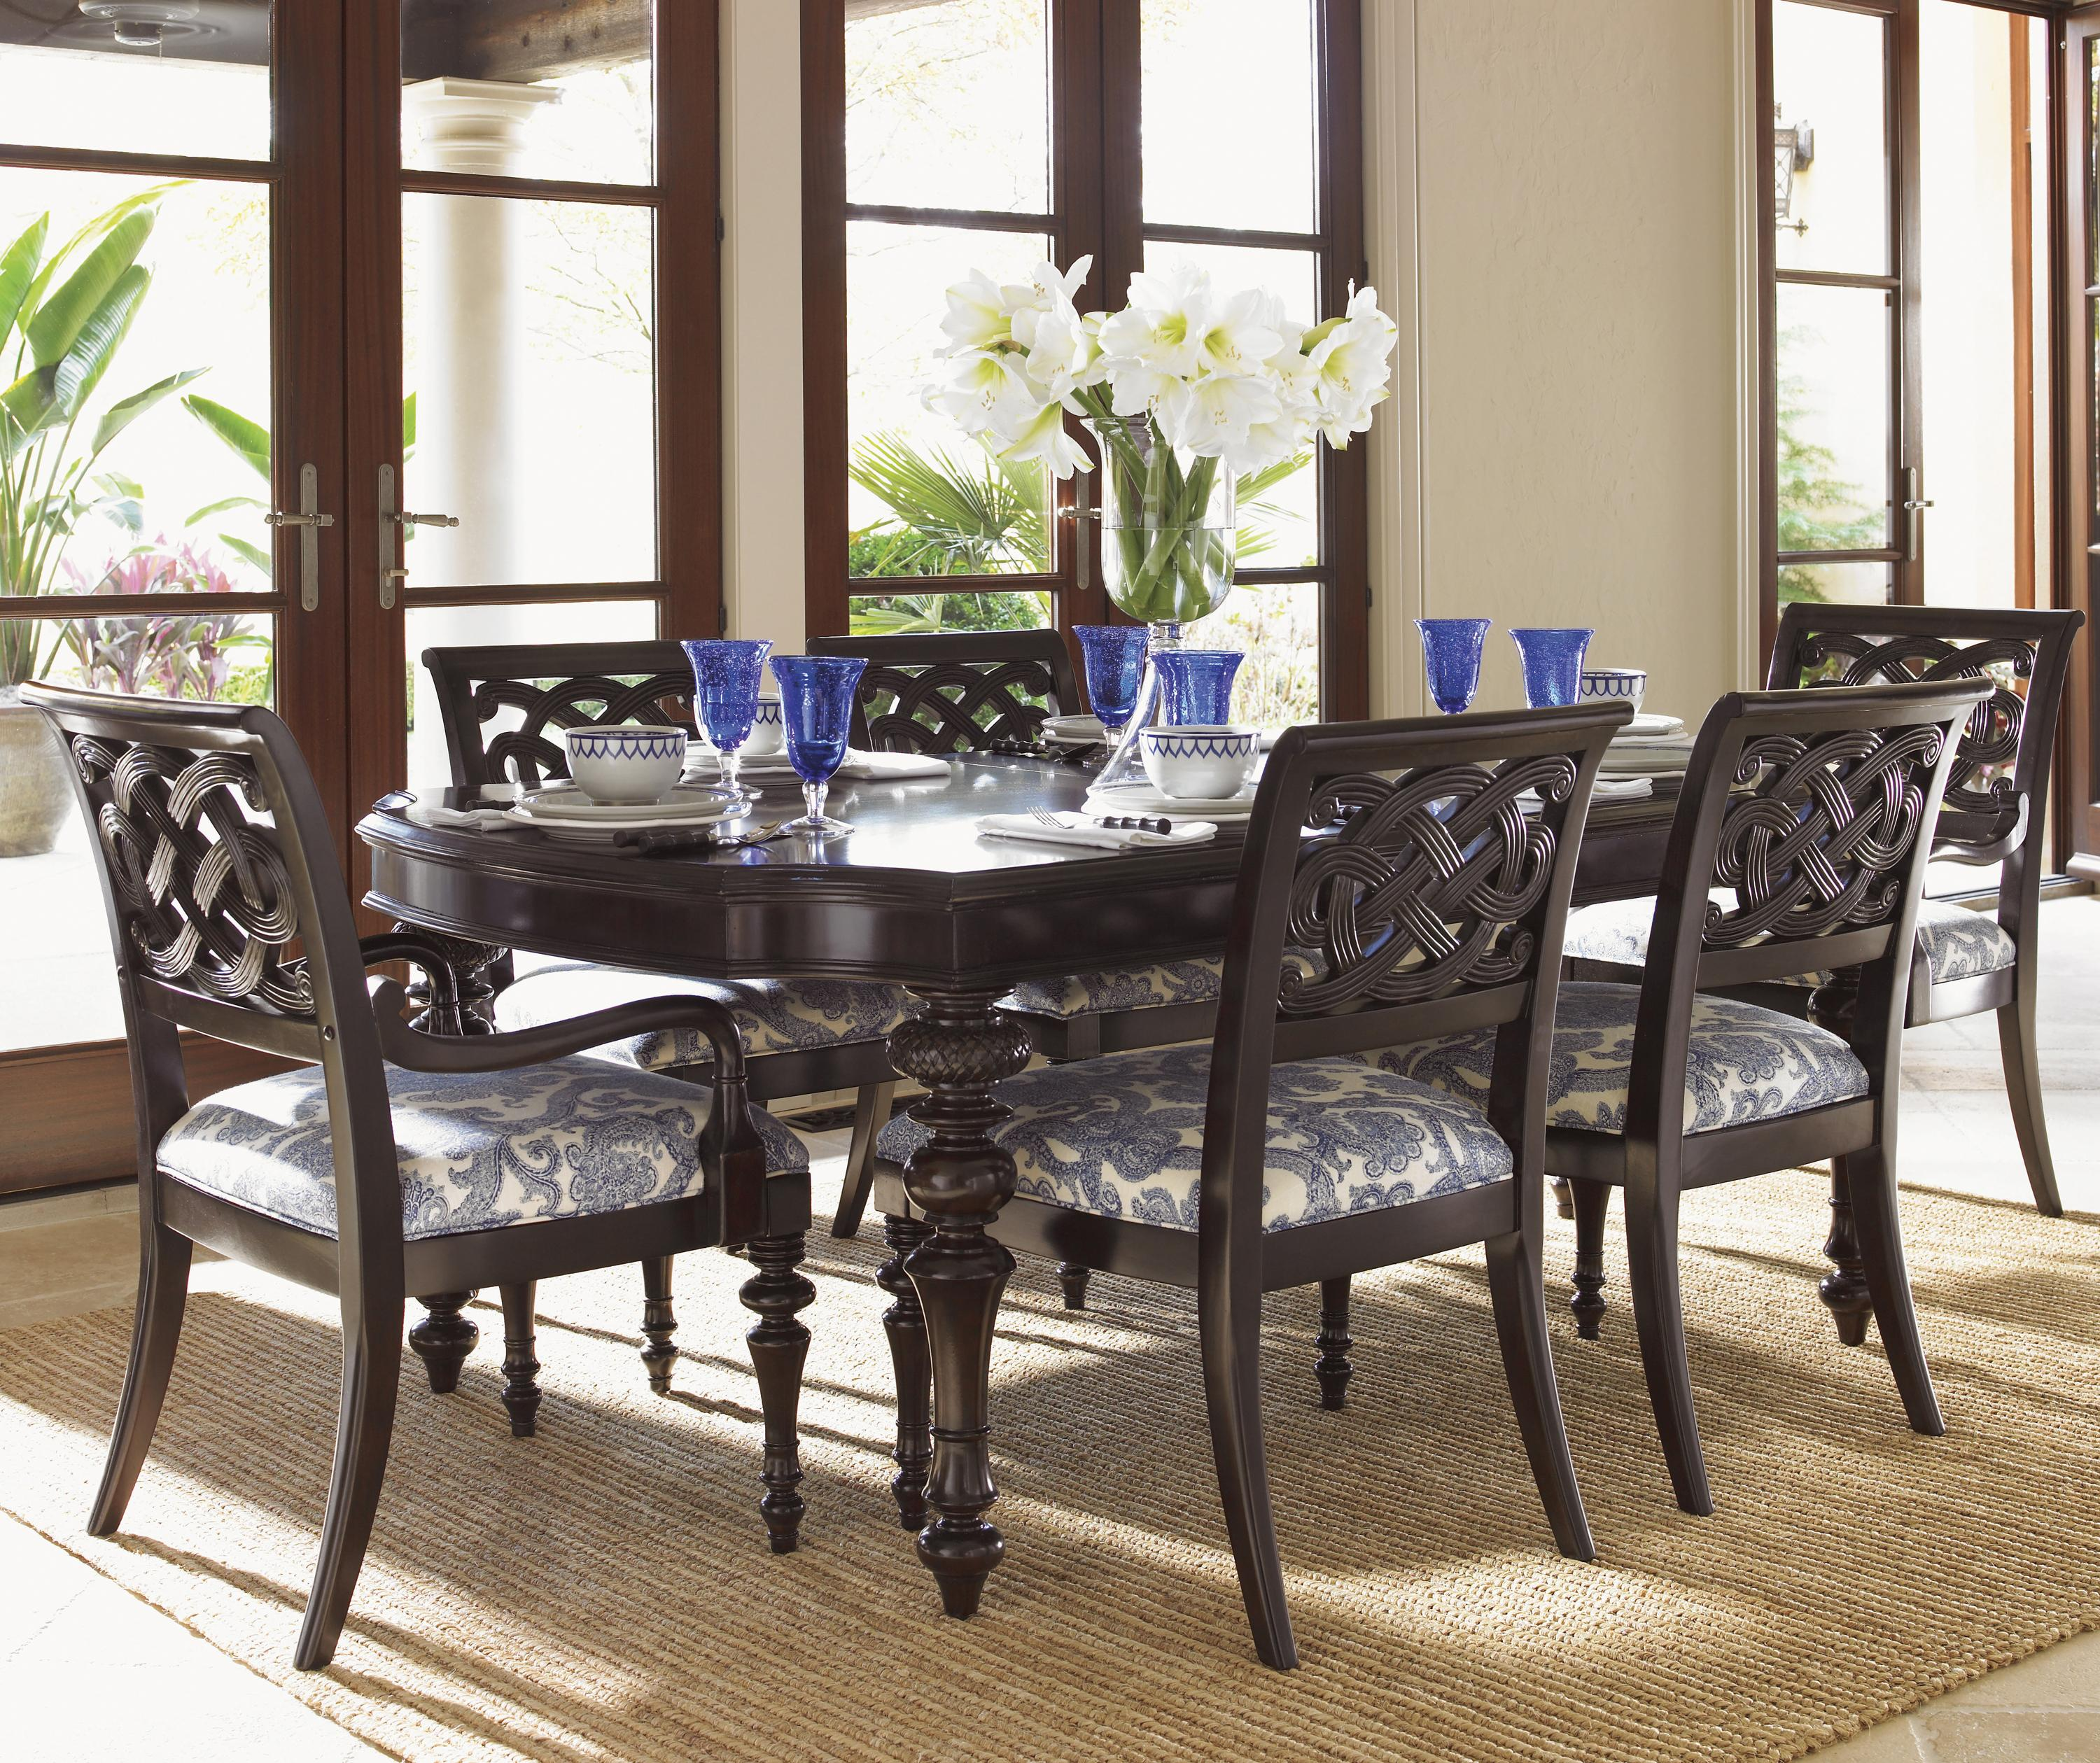 Royal kahala islands dining table w chairs costa rican furniture - Islands dining room ...